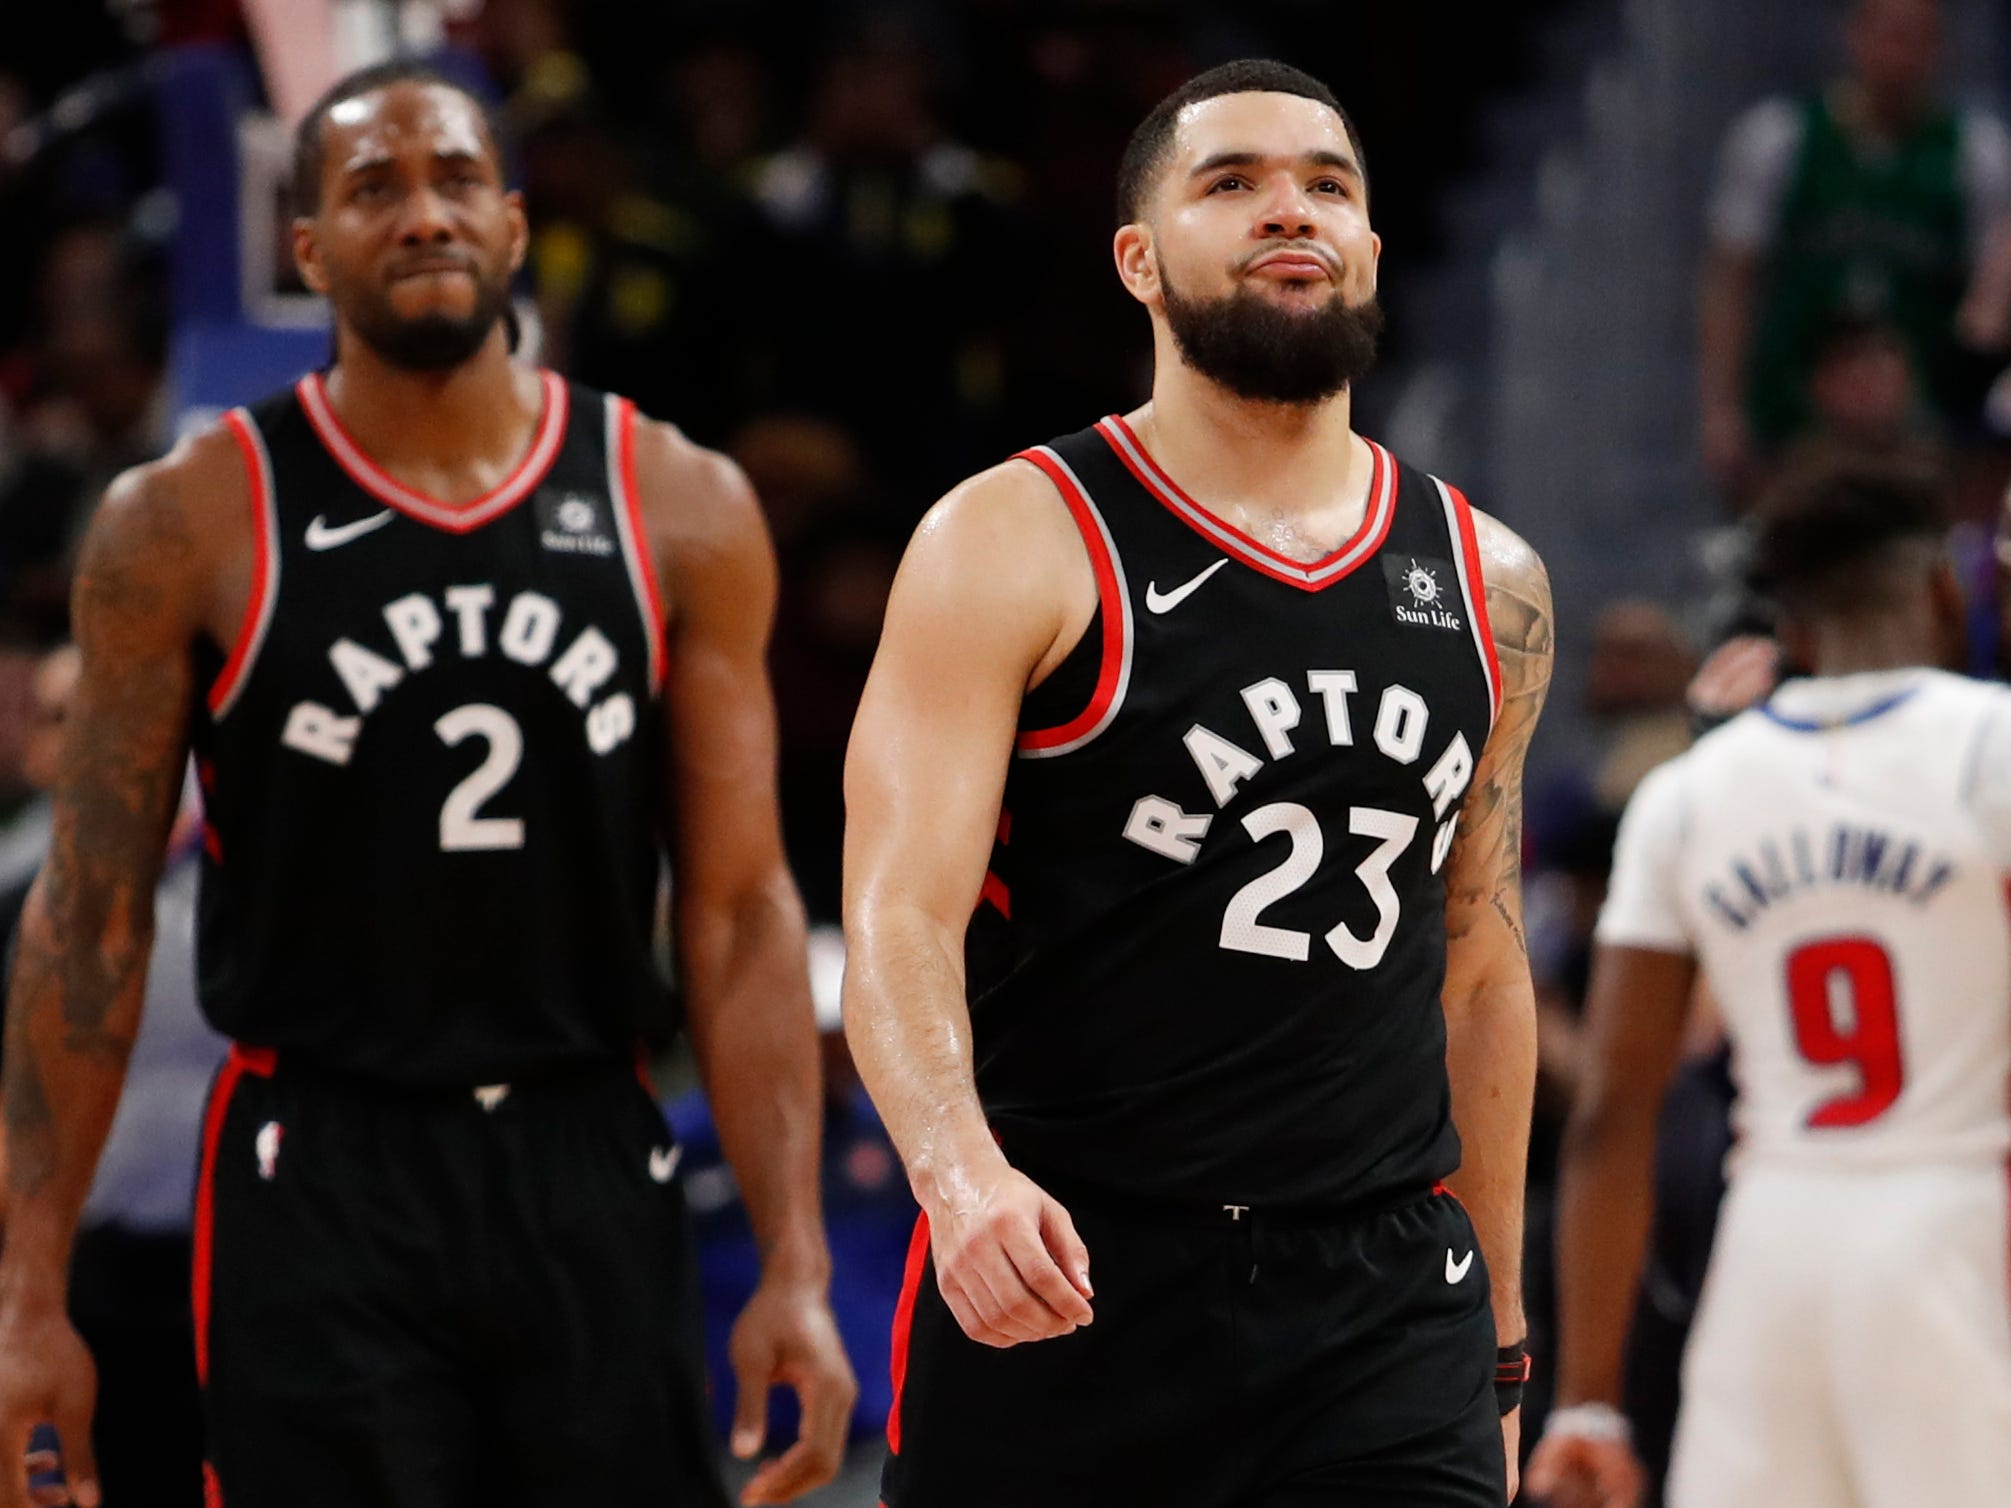 Toronto Raptors' Fred VanVleet (23) and Kawhi Leonard (2) walk to the bench during the fourth quarter of the Detroit Pistons' 110-107 win at Little Caesars Arena, Sunday, March 17, 2019.